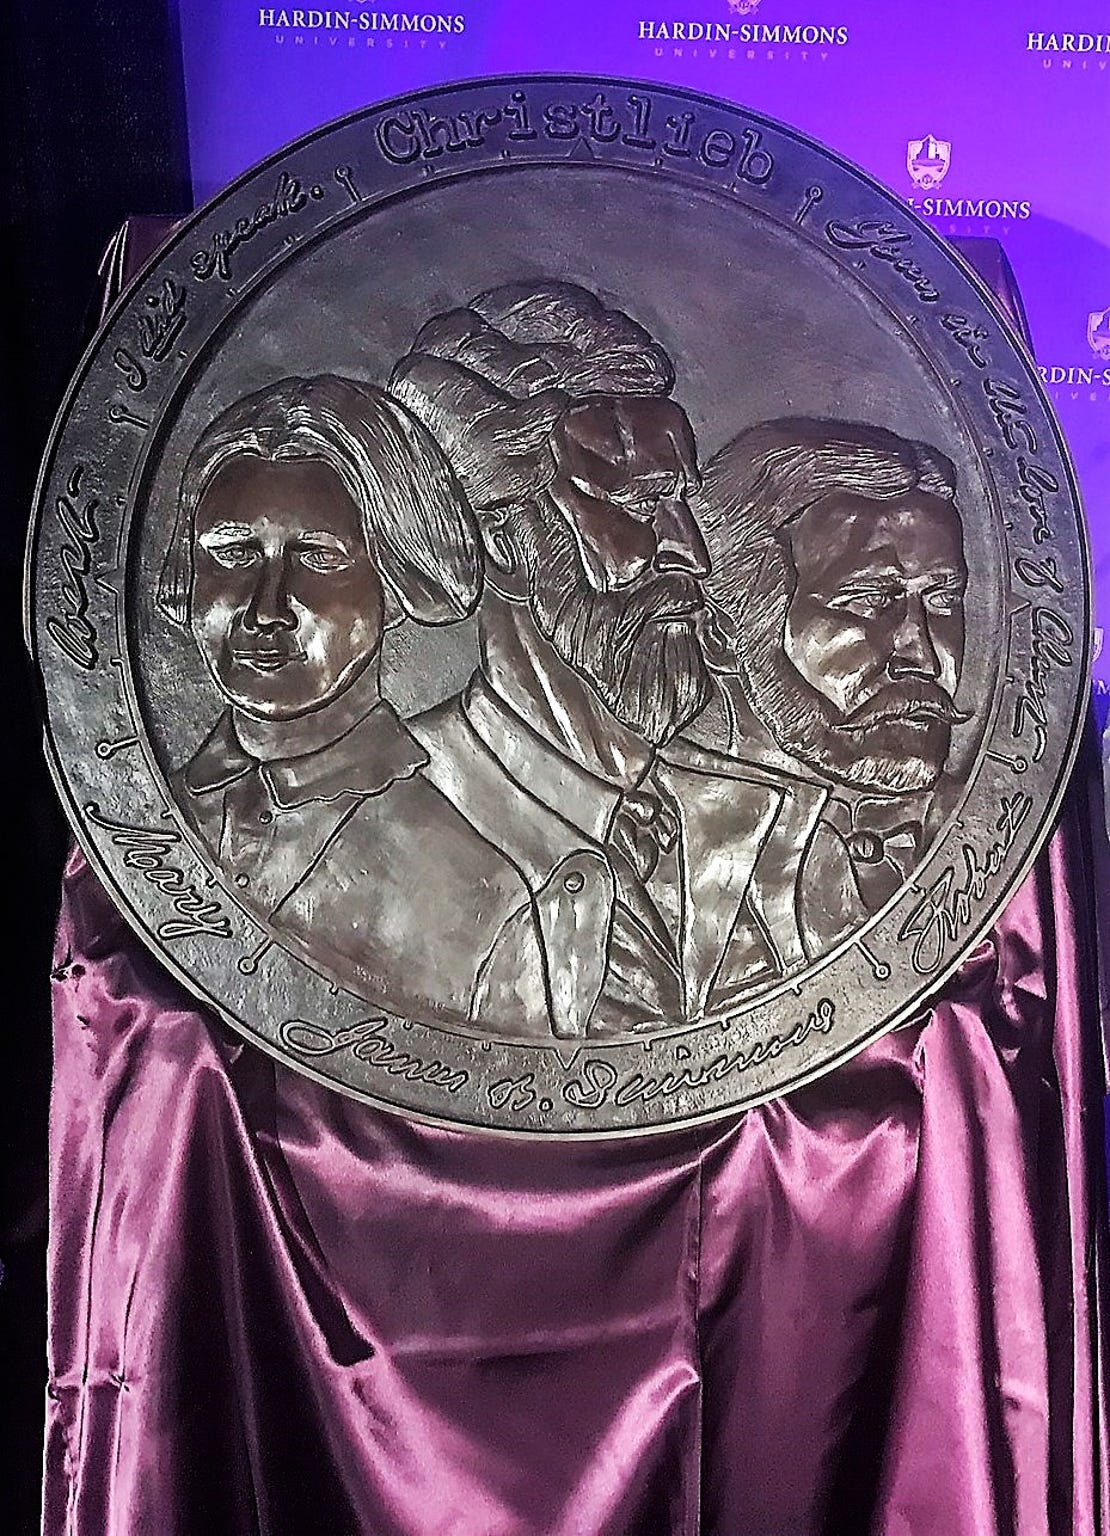 A larger version of a medallion that in part honors James B. Simmons. It first was awarded in 2018 to Dr. Virginia Connally.